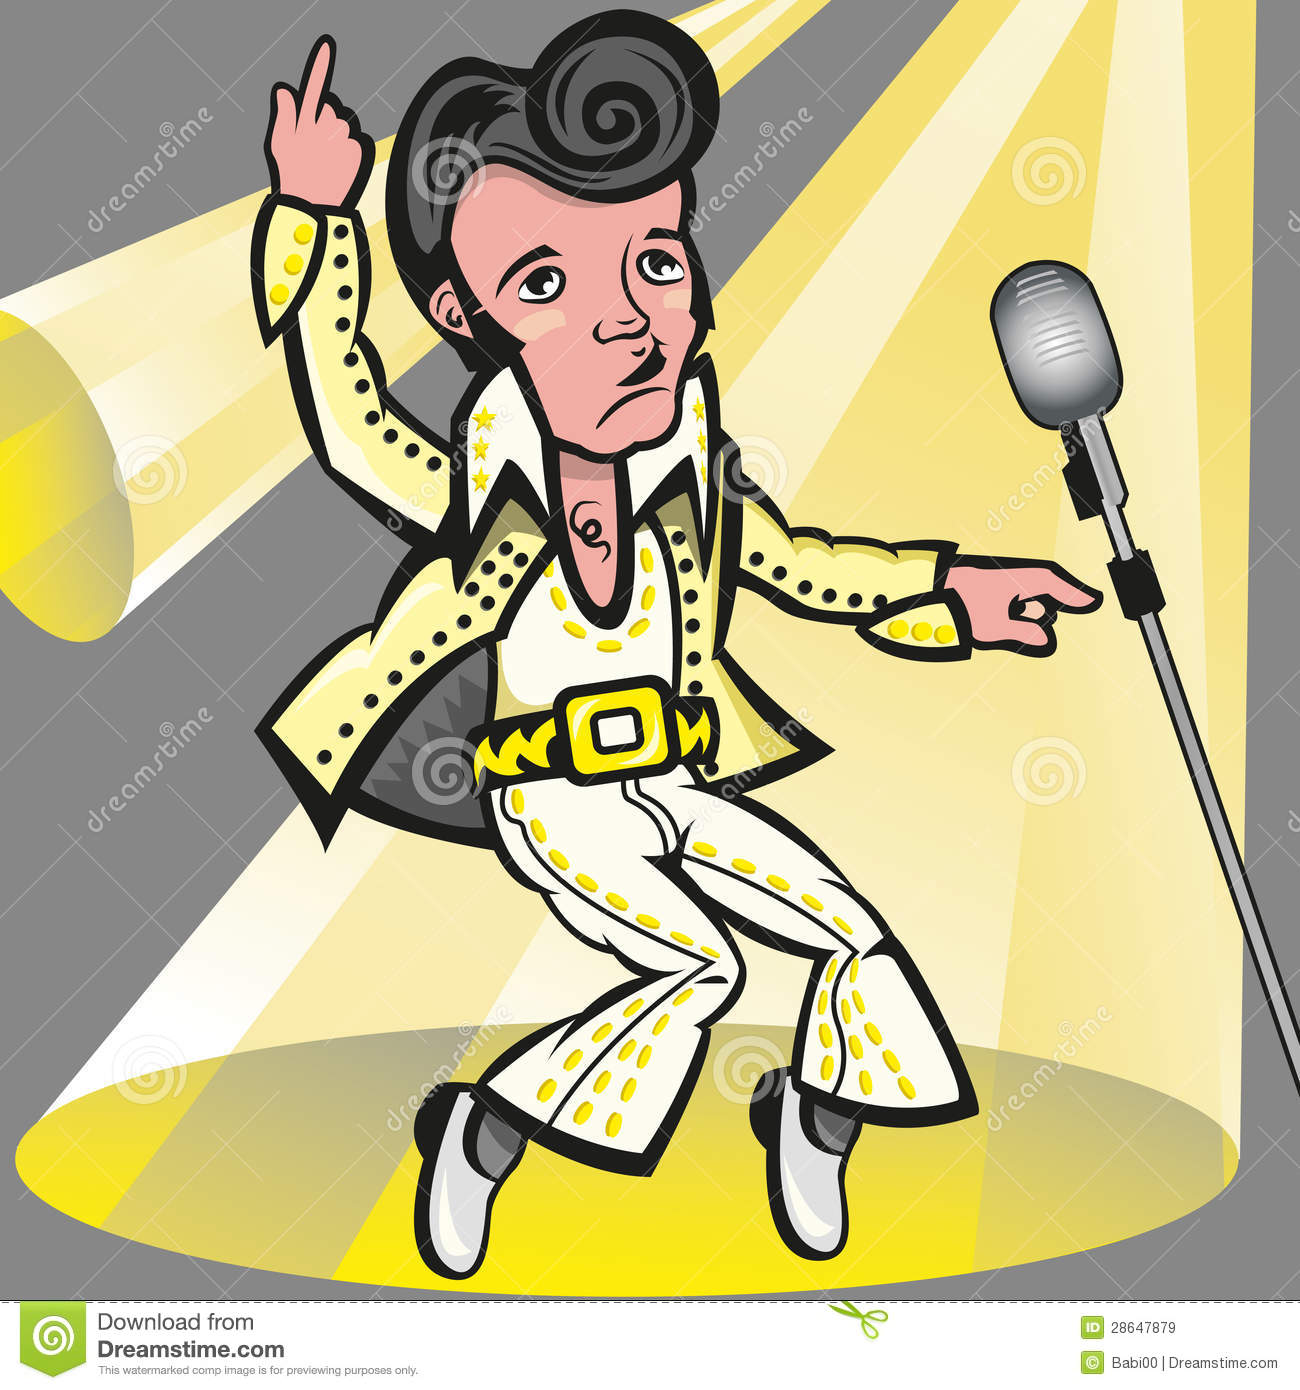 Elvis Presley Stock Illustrations – 71 Elvis Presley Stock ...